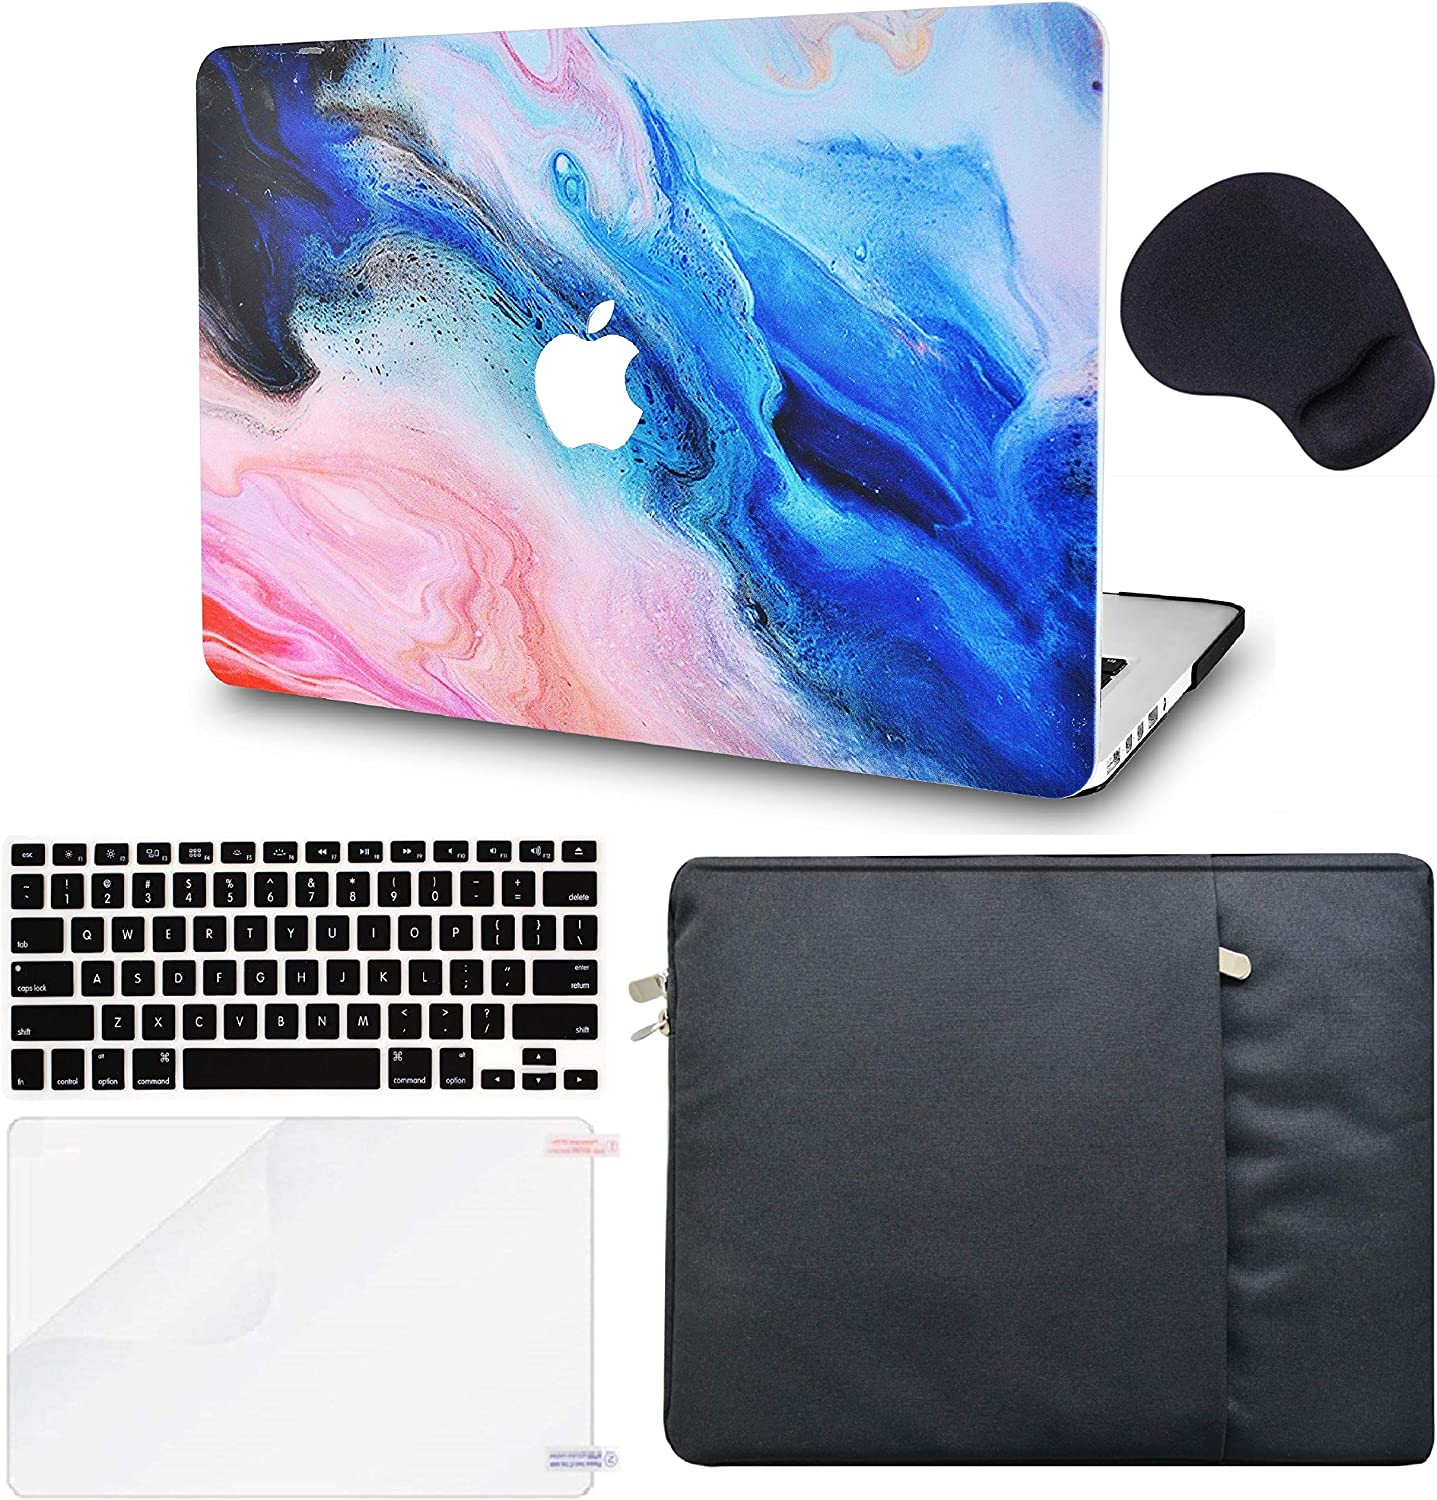 "LuvCase 5in1 Laptop Case for MacBook Pro 13""(2020) with Touch Bar A2251/A2289 Hard Shell Cover, Sleeve, Mouse Pad, Keyboard Cover and Screen Protector (Oil Paint 4)"